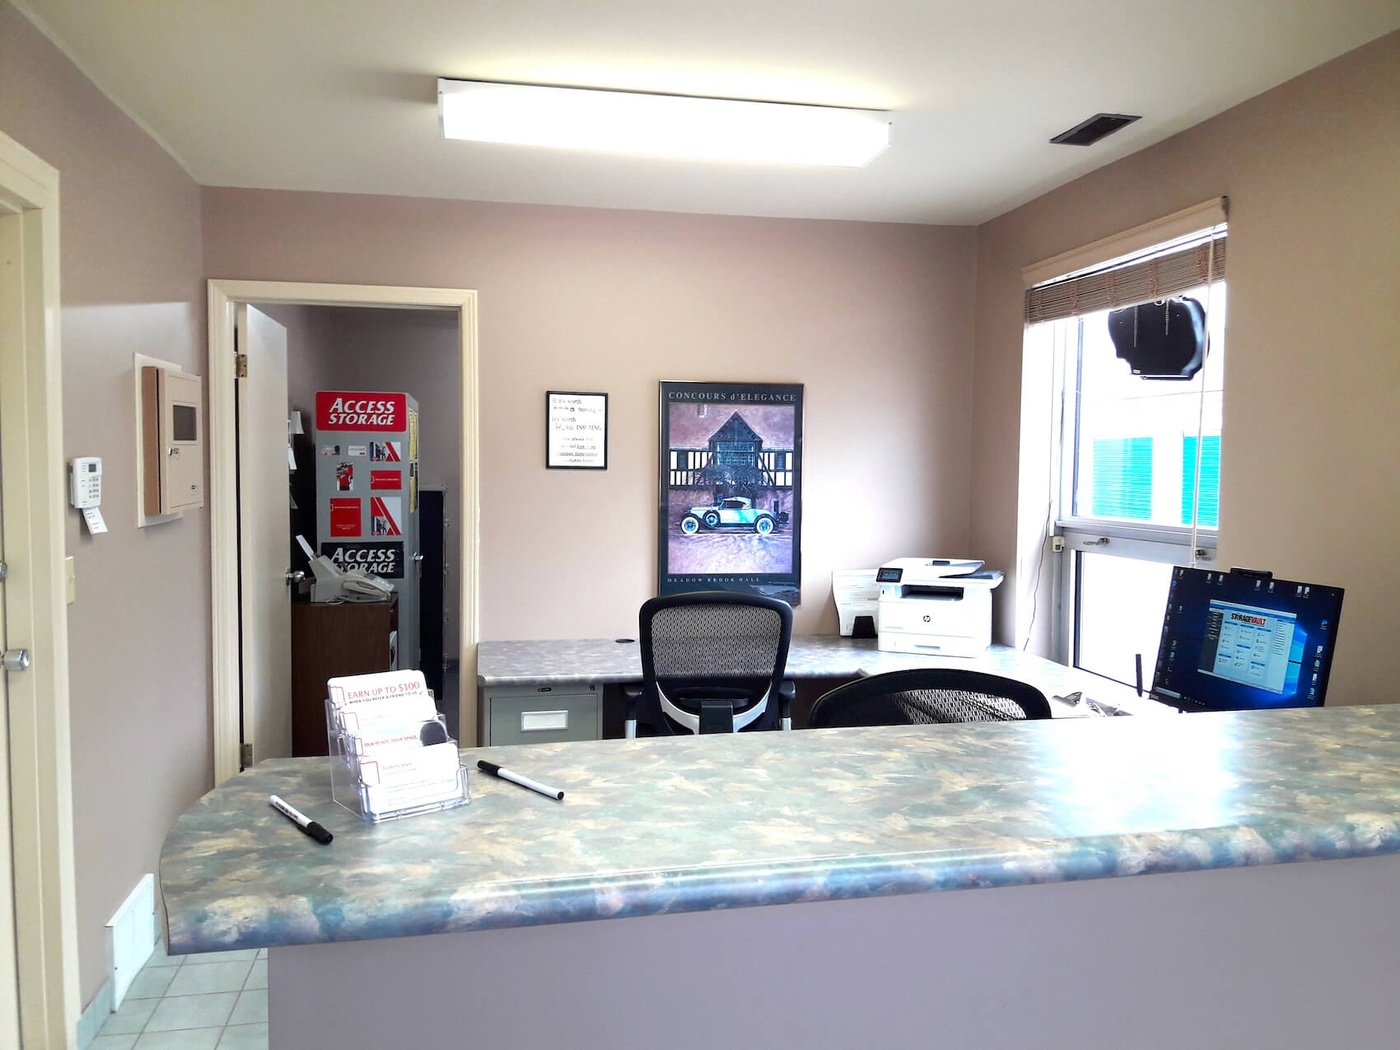 Rent Windsor storage units at 4381 Seventh Concession Rd. We offer a wide-range of affordable self storage units and your first 4 weeks are free!